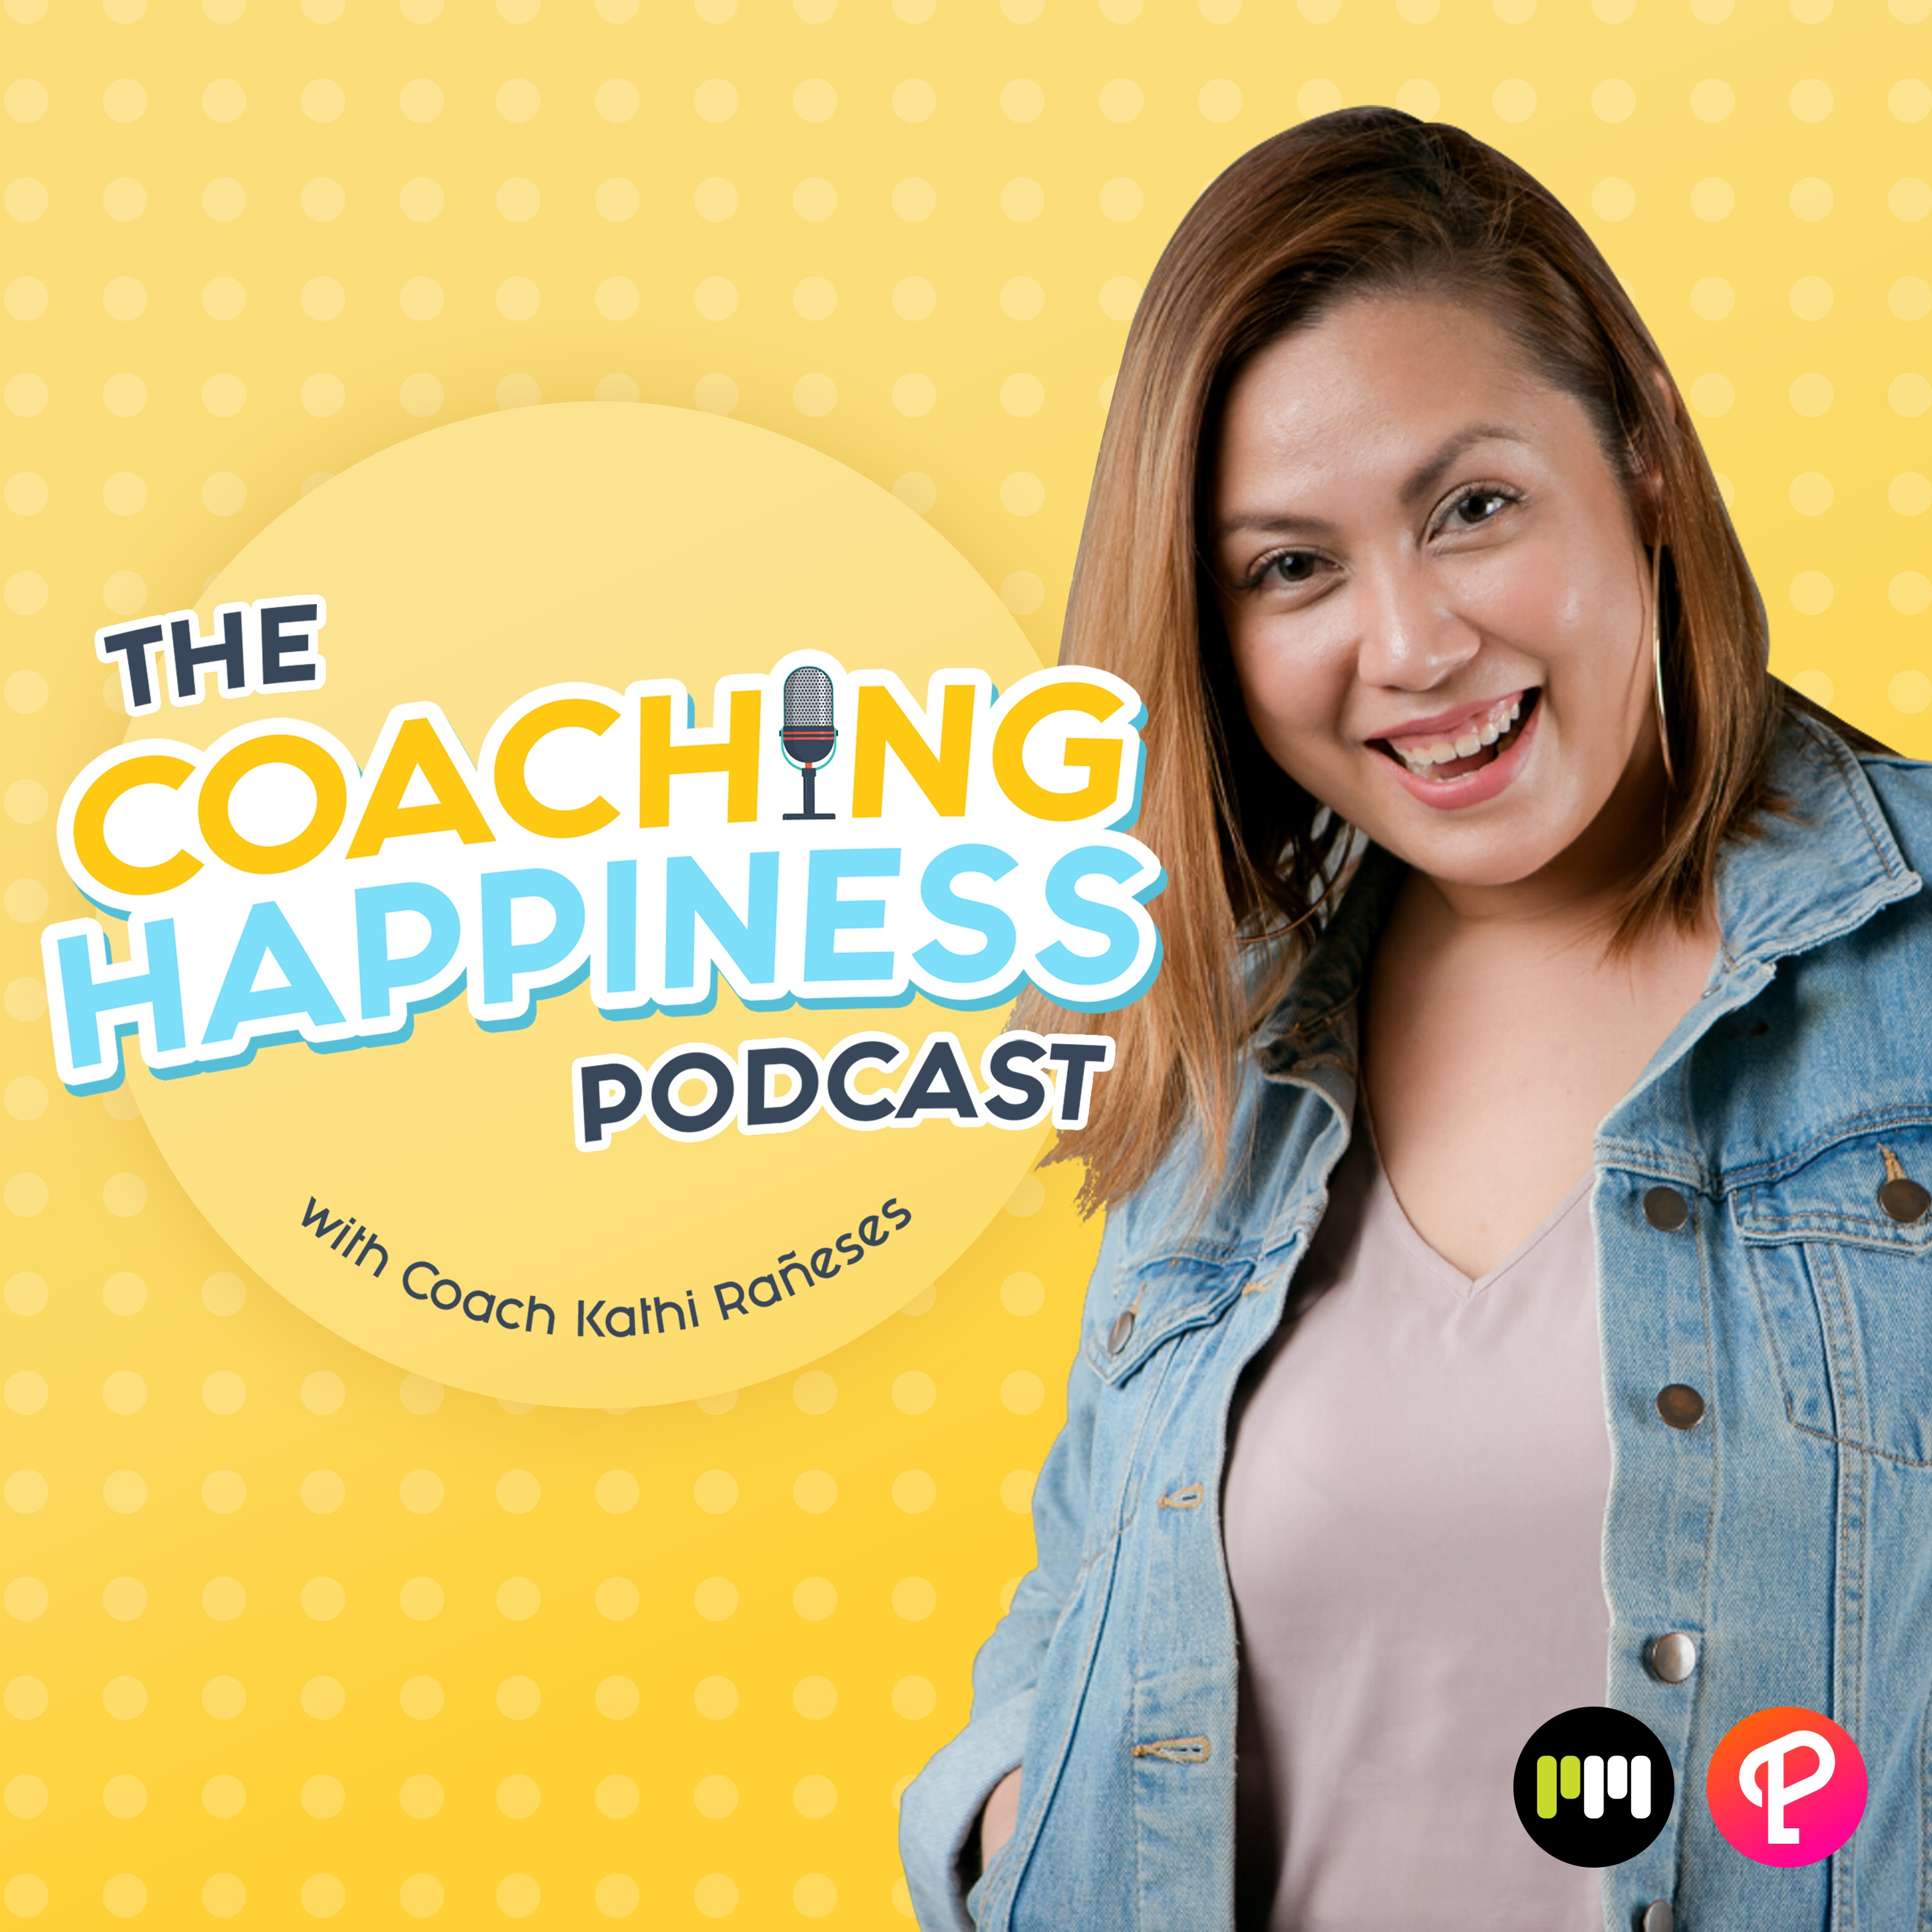 The Coaching Happiness Podcast